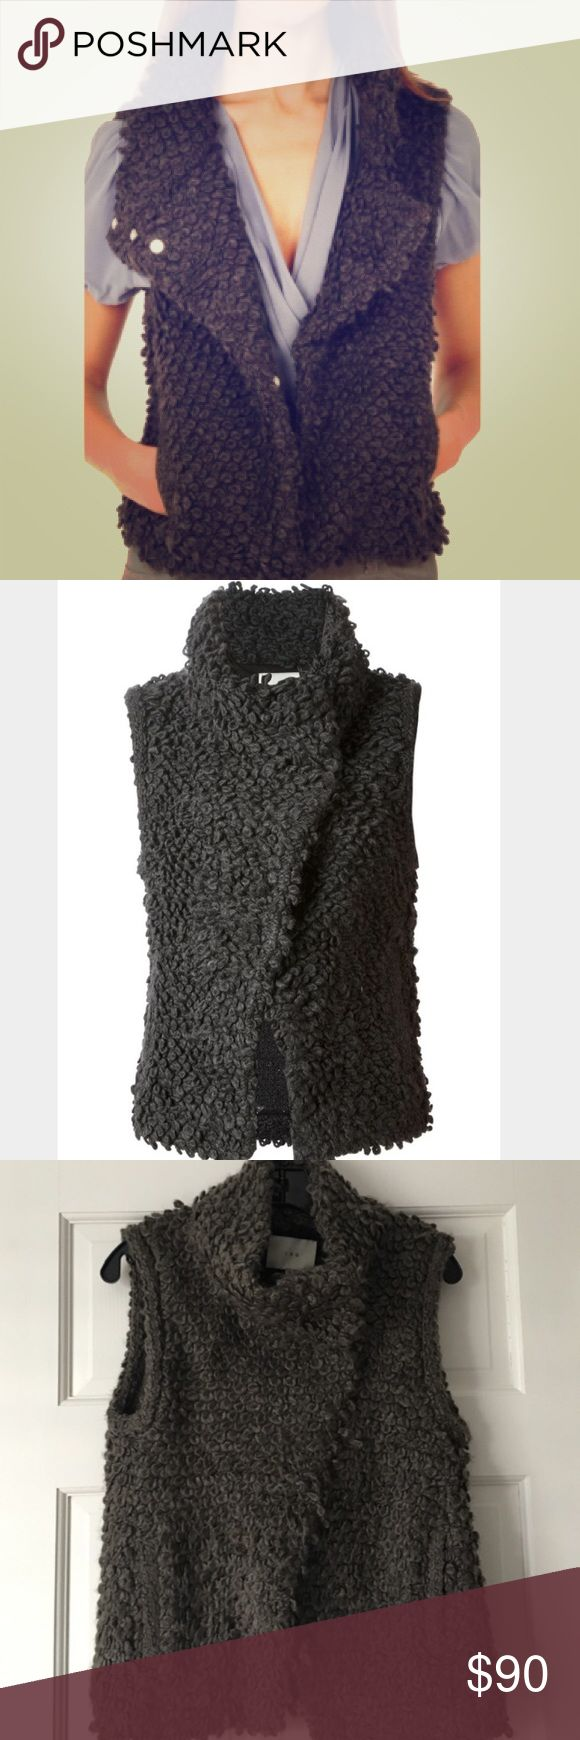 IRO Sweater Vest IRO Catleen Boucle Knit Vest - A chic stand collar and stylish fold-over lapel define a sumptuous boucle Vest softened with a touch of virgin book. Super comfortable  and warm!!  48% Acrylic/ 25% Wool/ 24% Cotton/ 3% Polyamide. 24' length. Size 6. IRO Jackets & Coats Vests